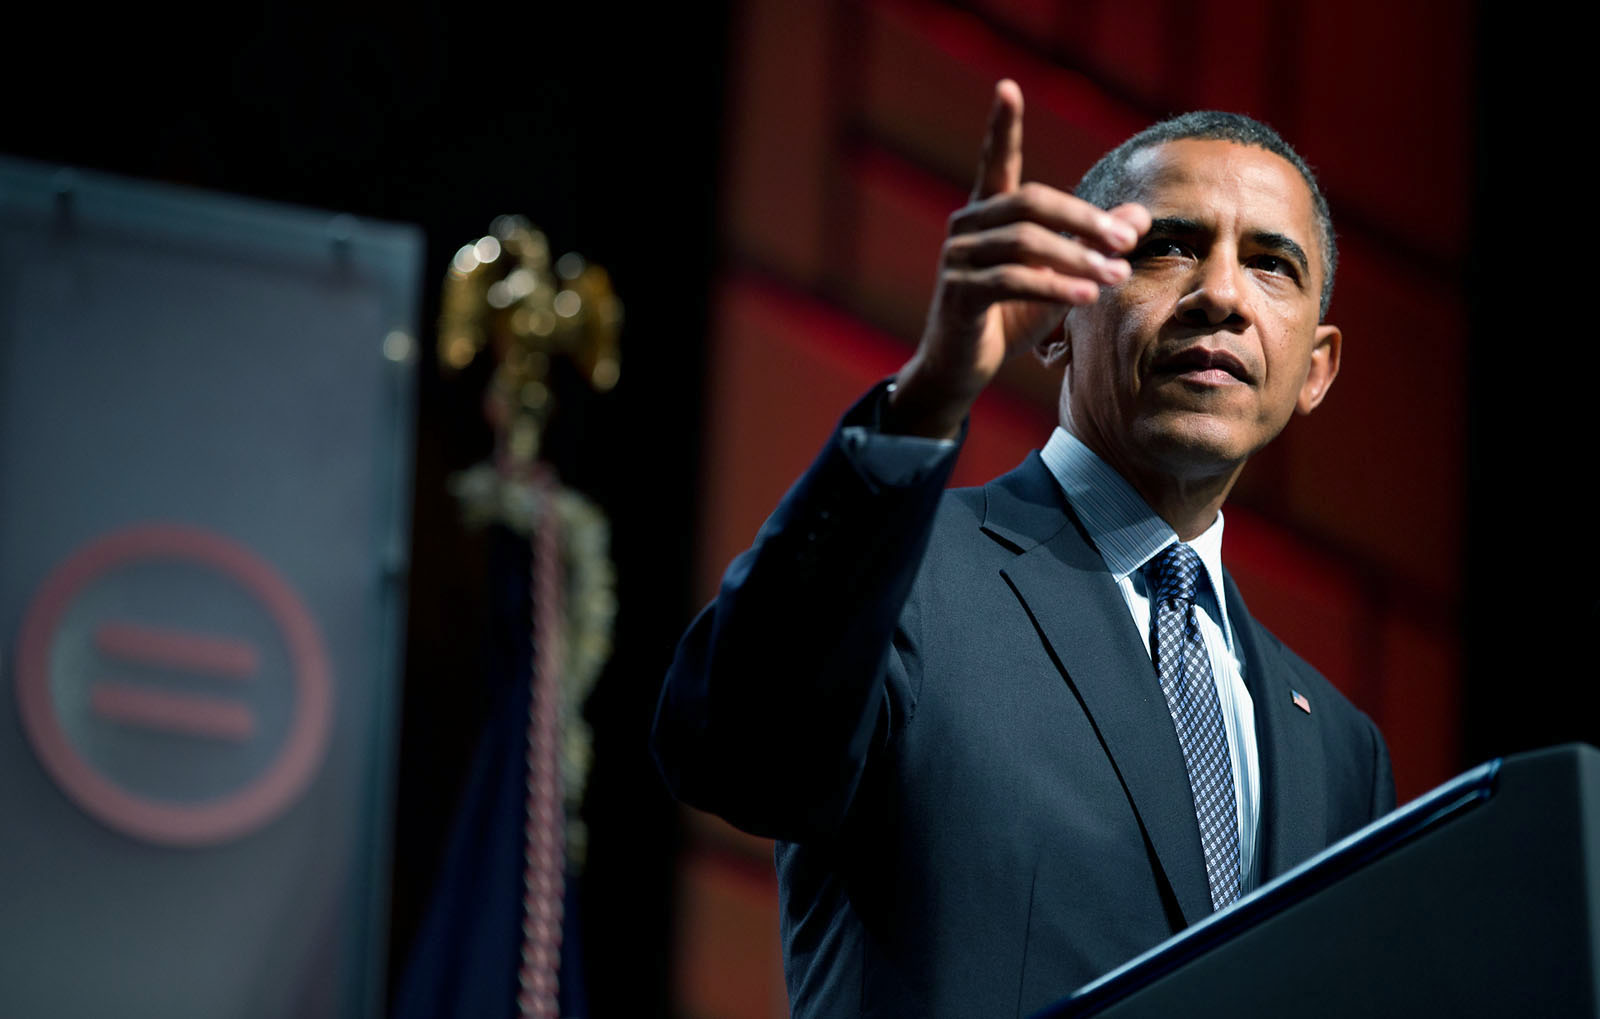 President Barack Obama delivers remarks at the Urban League Convention